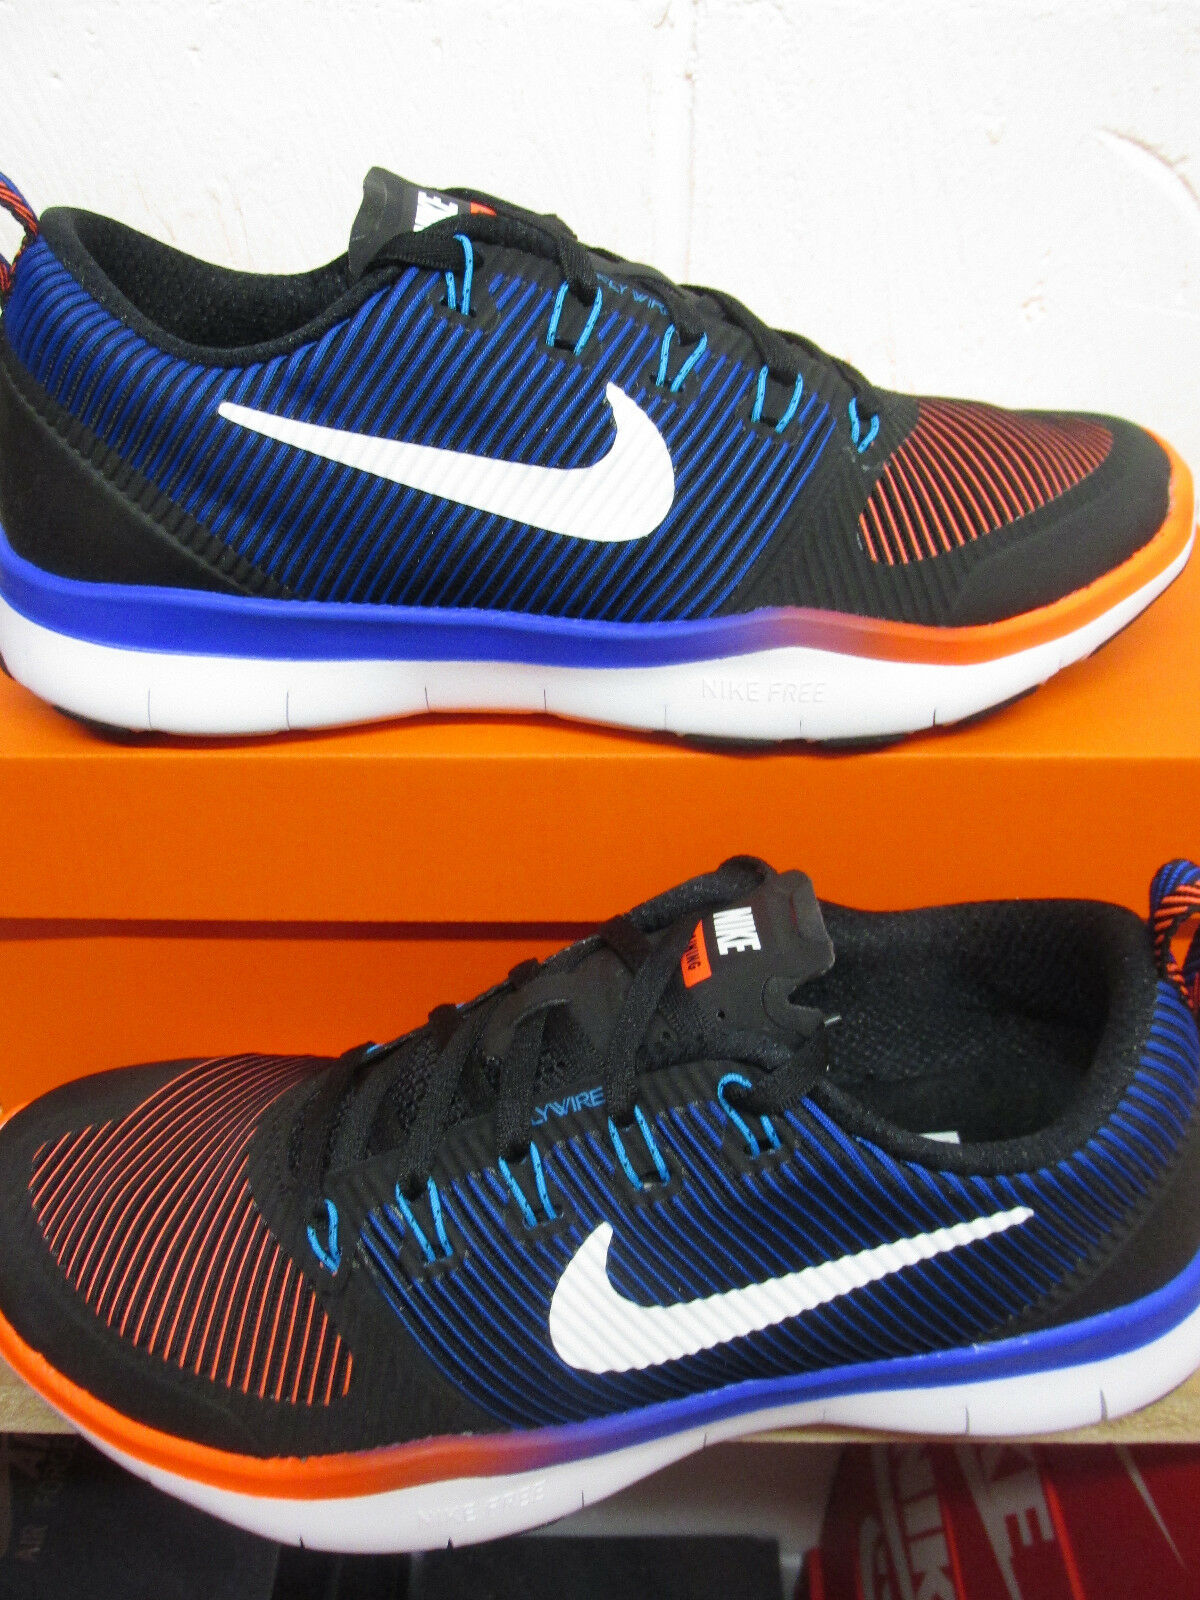 Nike Free Train Versatility Mens Running Trainers 833258 016 Sneakers Shoes